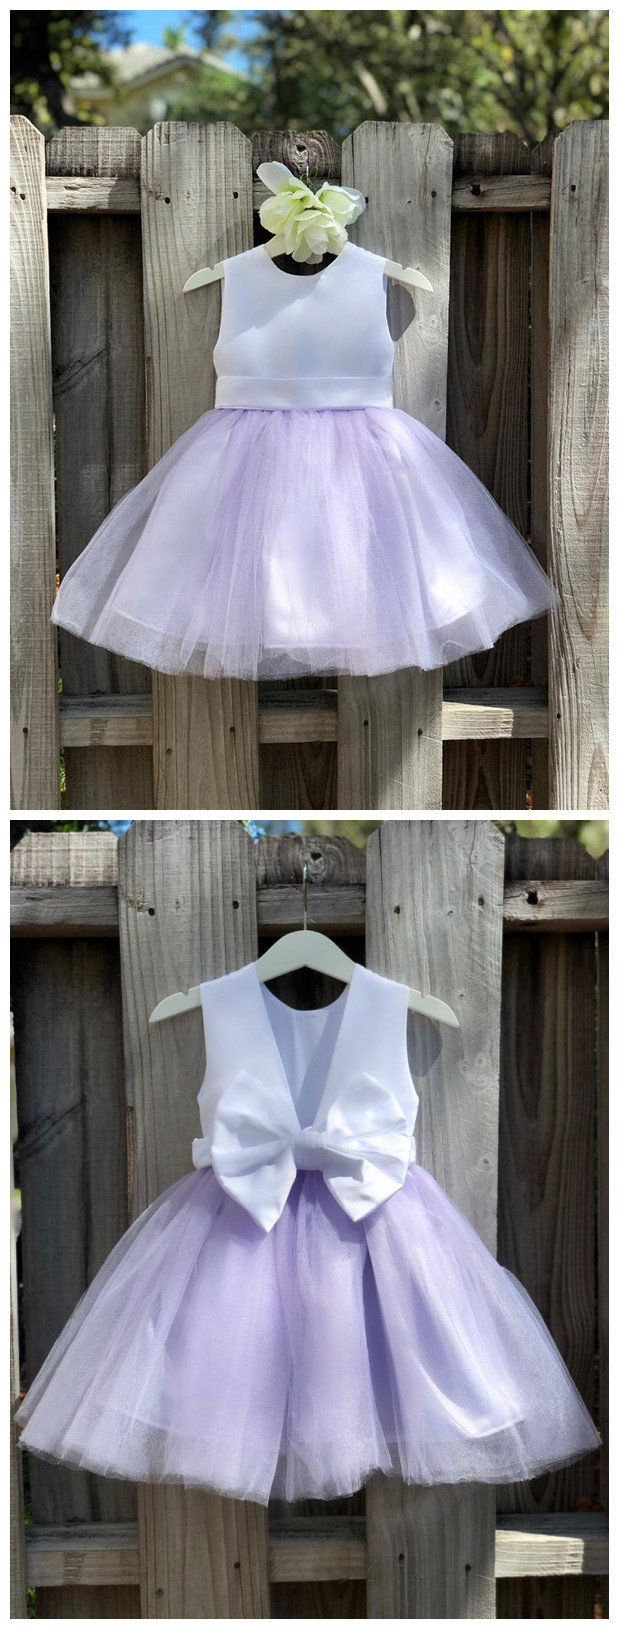 Lilac Flower Girl Dress, Lilac Flower Girl Dress Elegant Satin Tulle Flower Girl